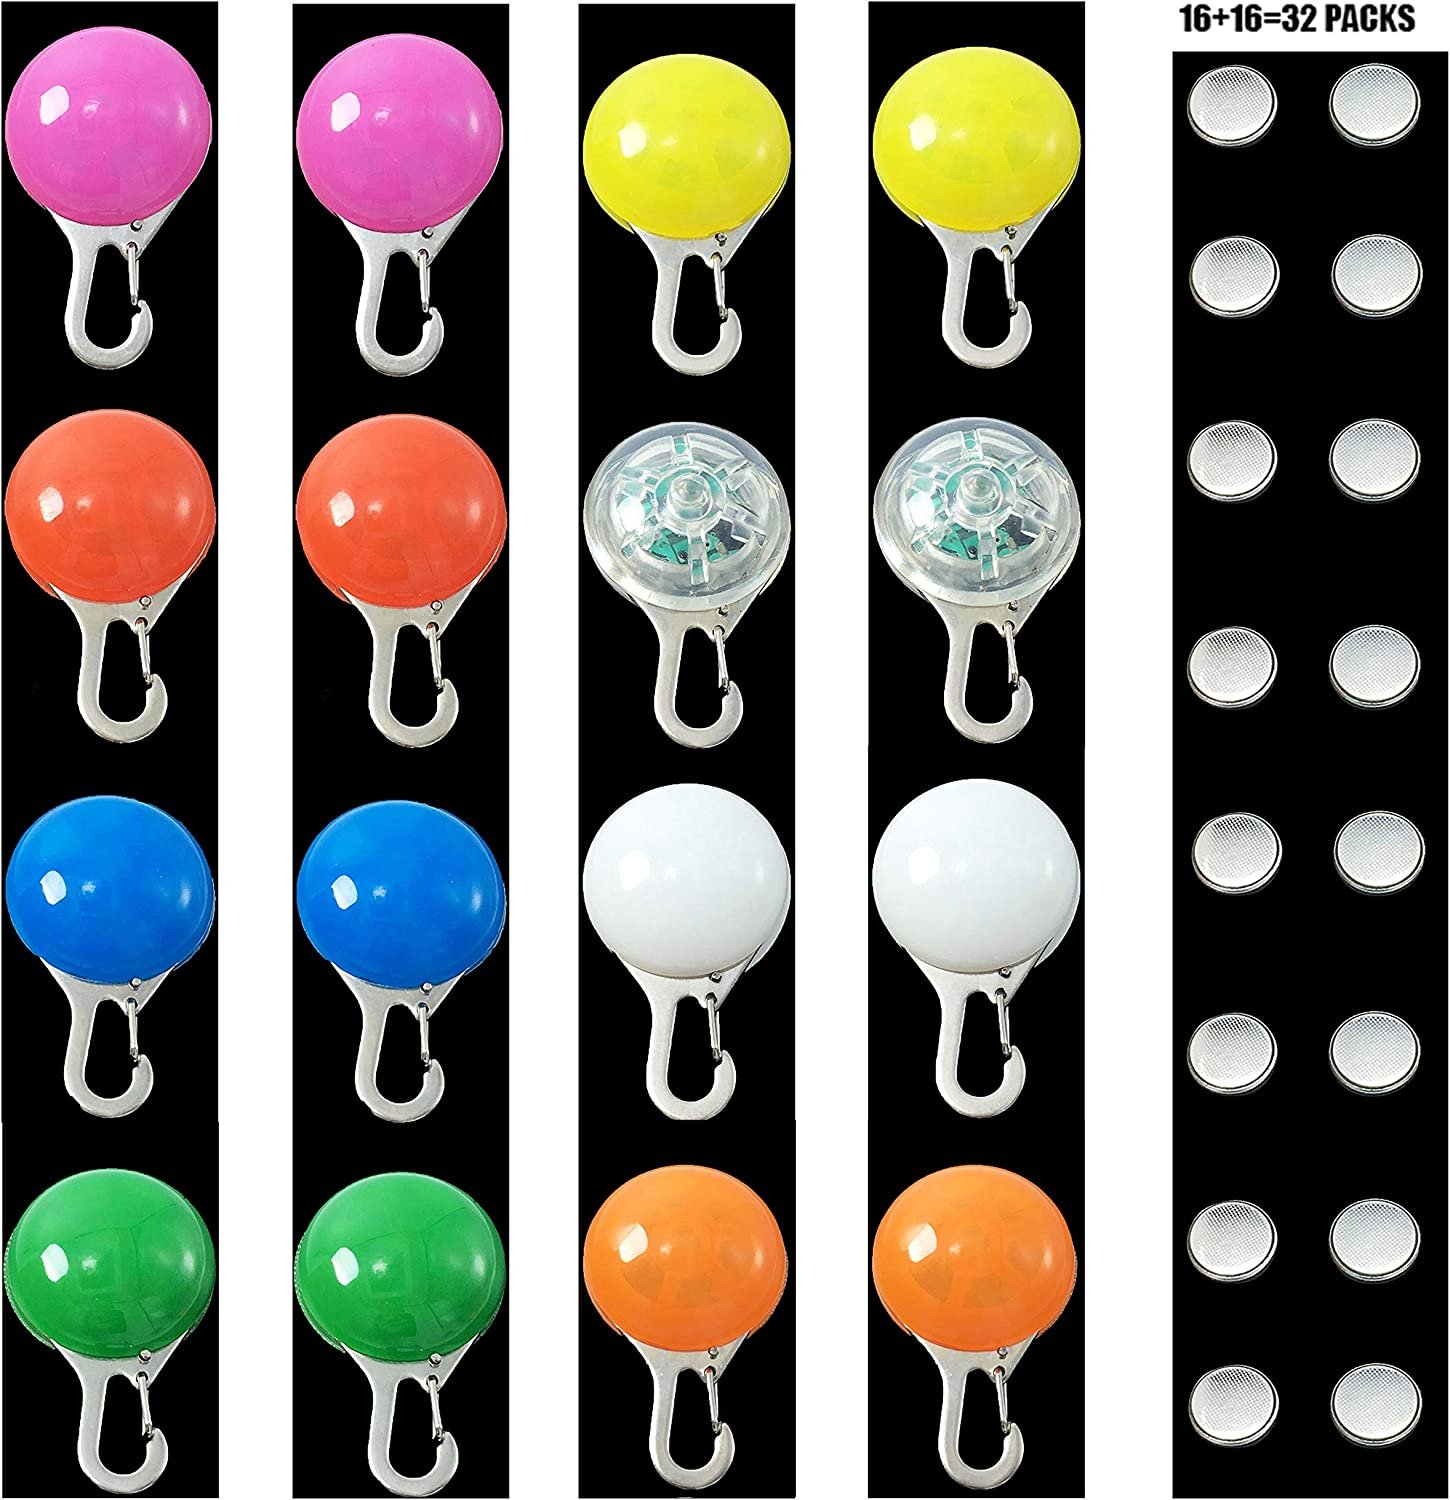 Aibushishou Rainproof Safety Lights for Dogs, Cats, or Night Visitors for Night Walks, Including Extra Battery,Replacement,pet Collar LED Mix color Lights Flash tag ID Tags (16 pcs)